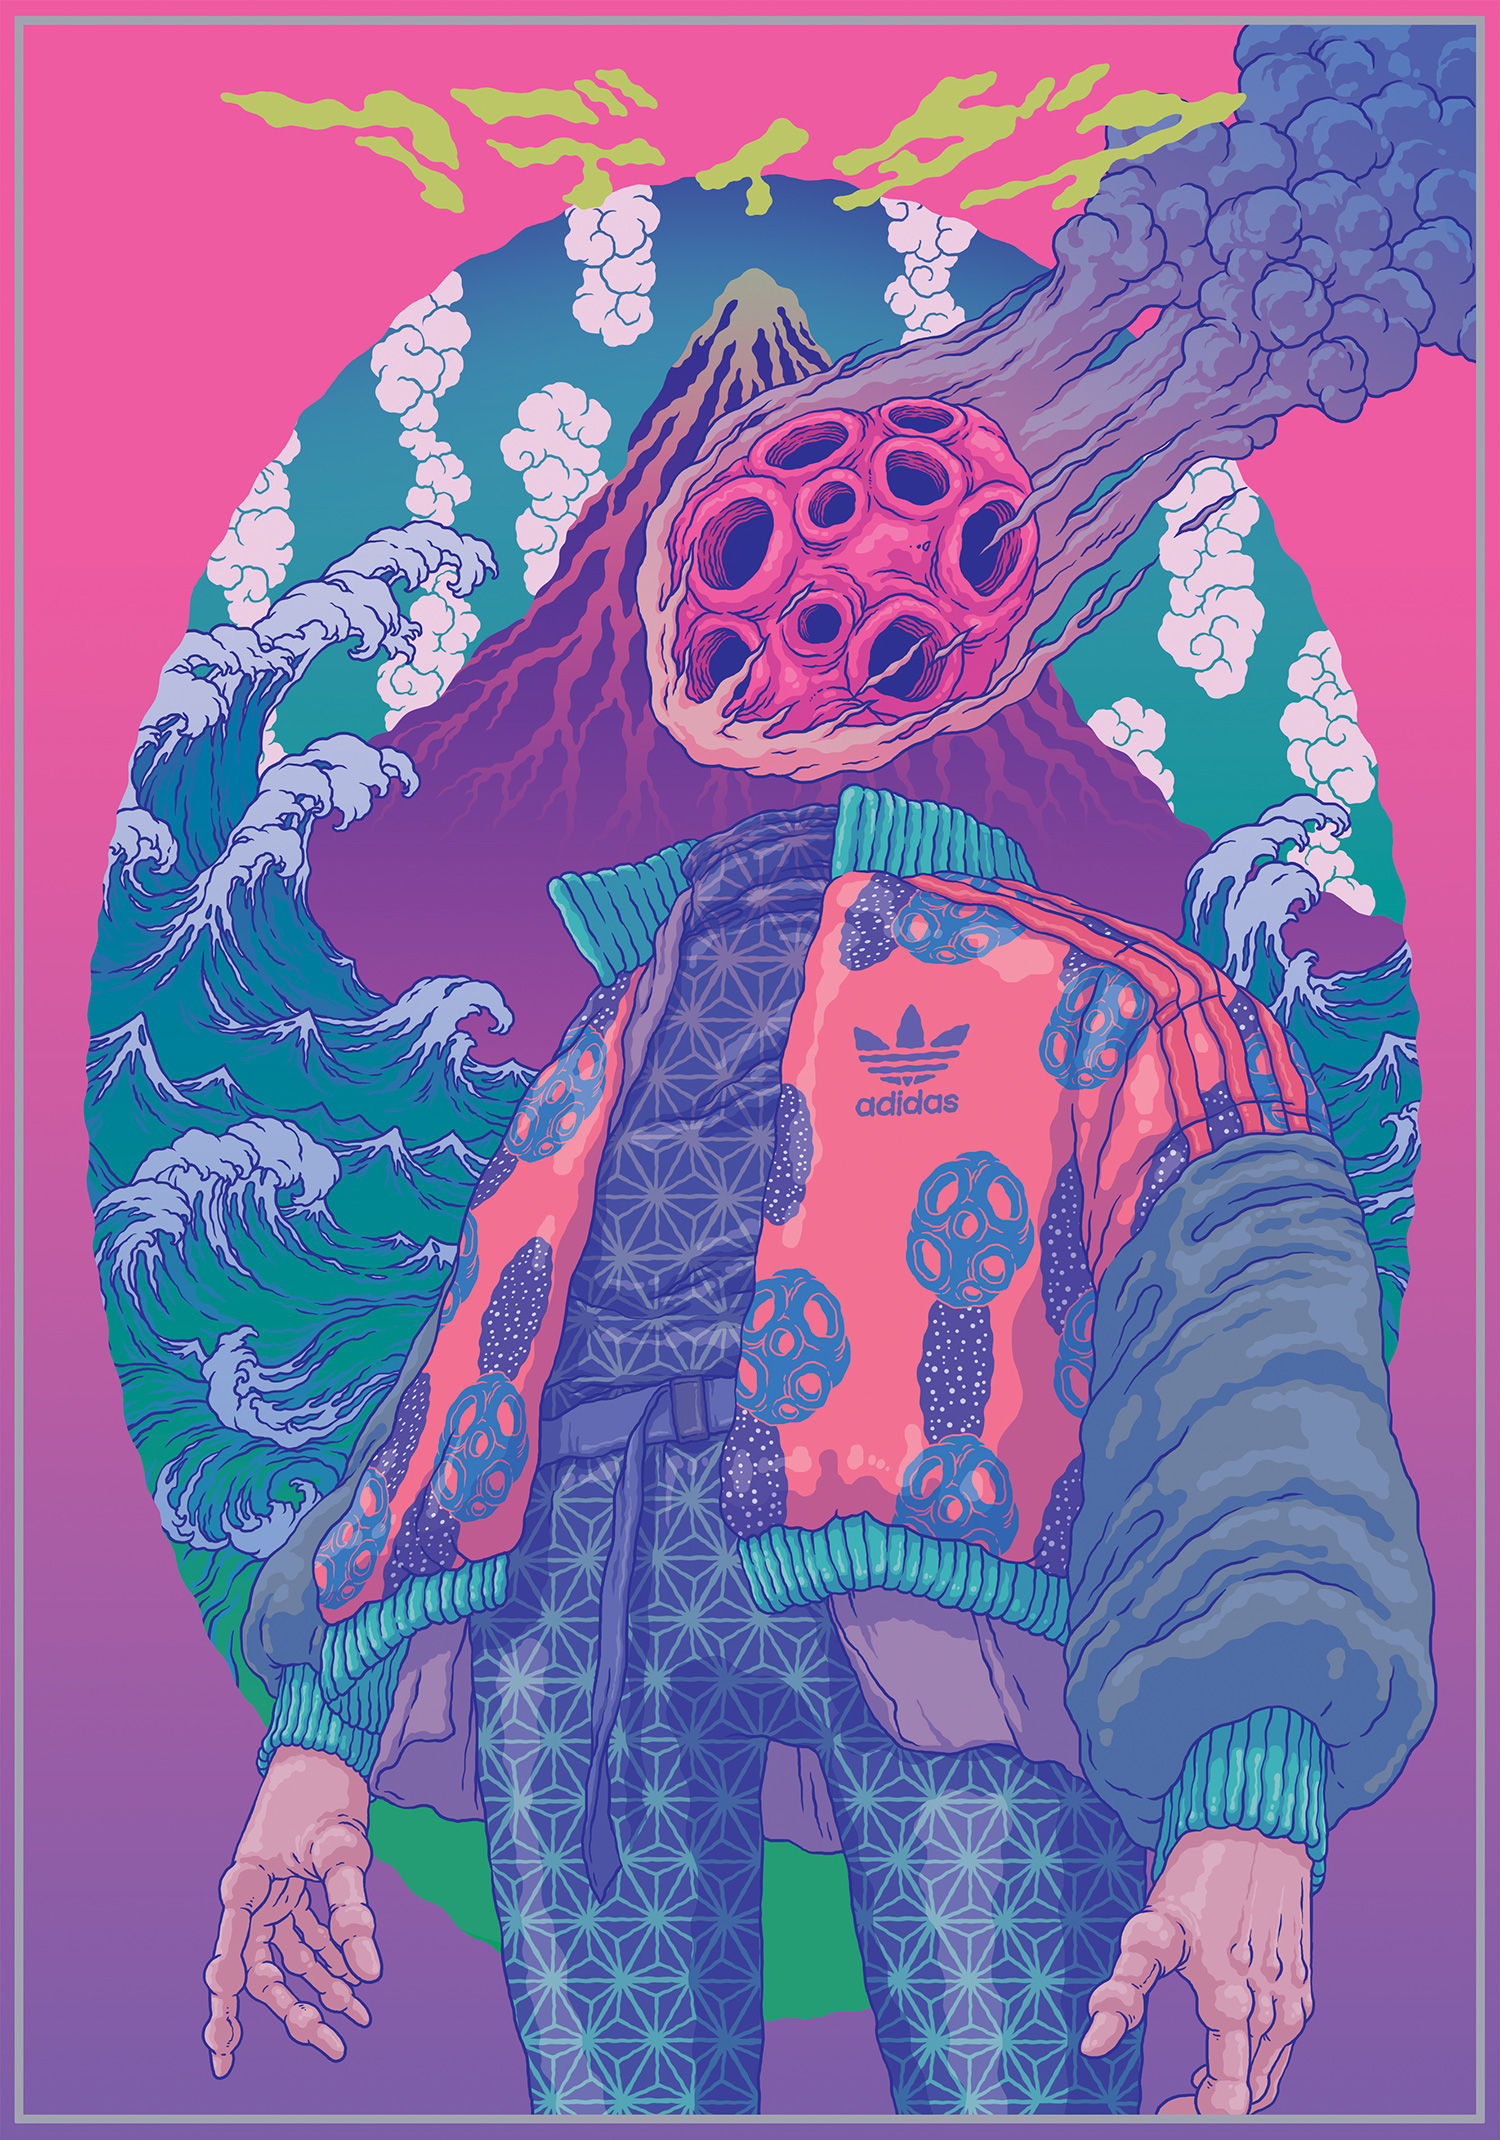 Sell Used Clothes Online >> Illustrator Bang Sangho on his fantastical alien worlds ...